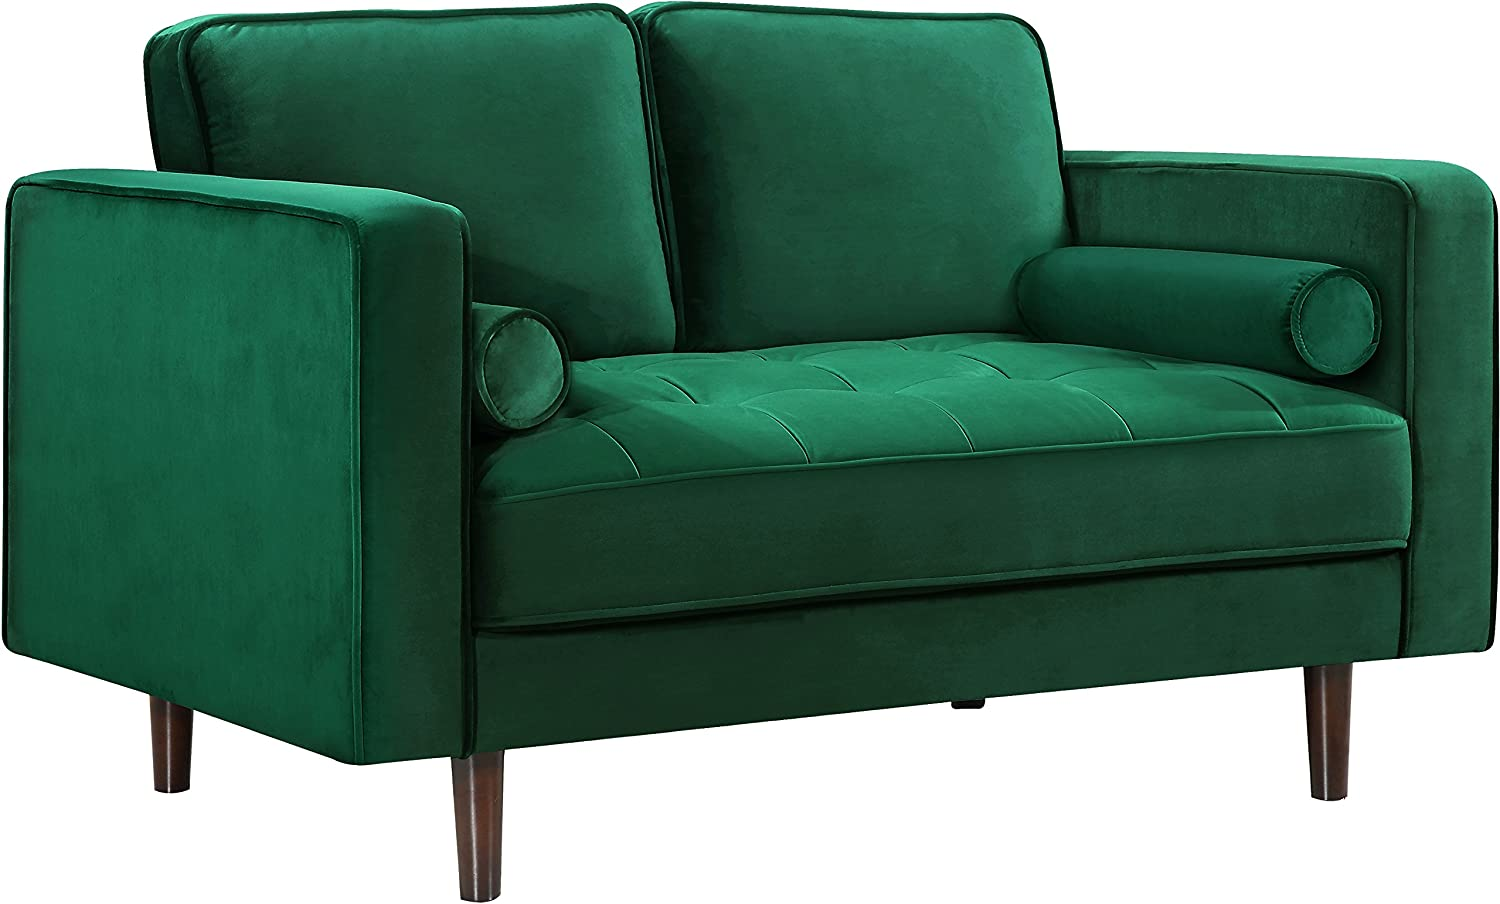 Meridian Furniture Emily Collection Modern   Contemporary Velvet Upholstered Loveseat with Luxurious Deep Button Tufting and Custom Wood Legs, Green, 59